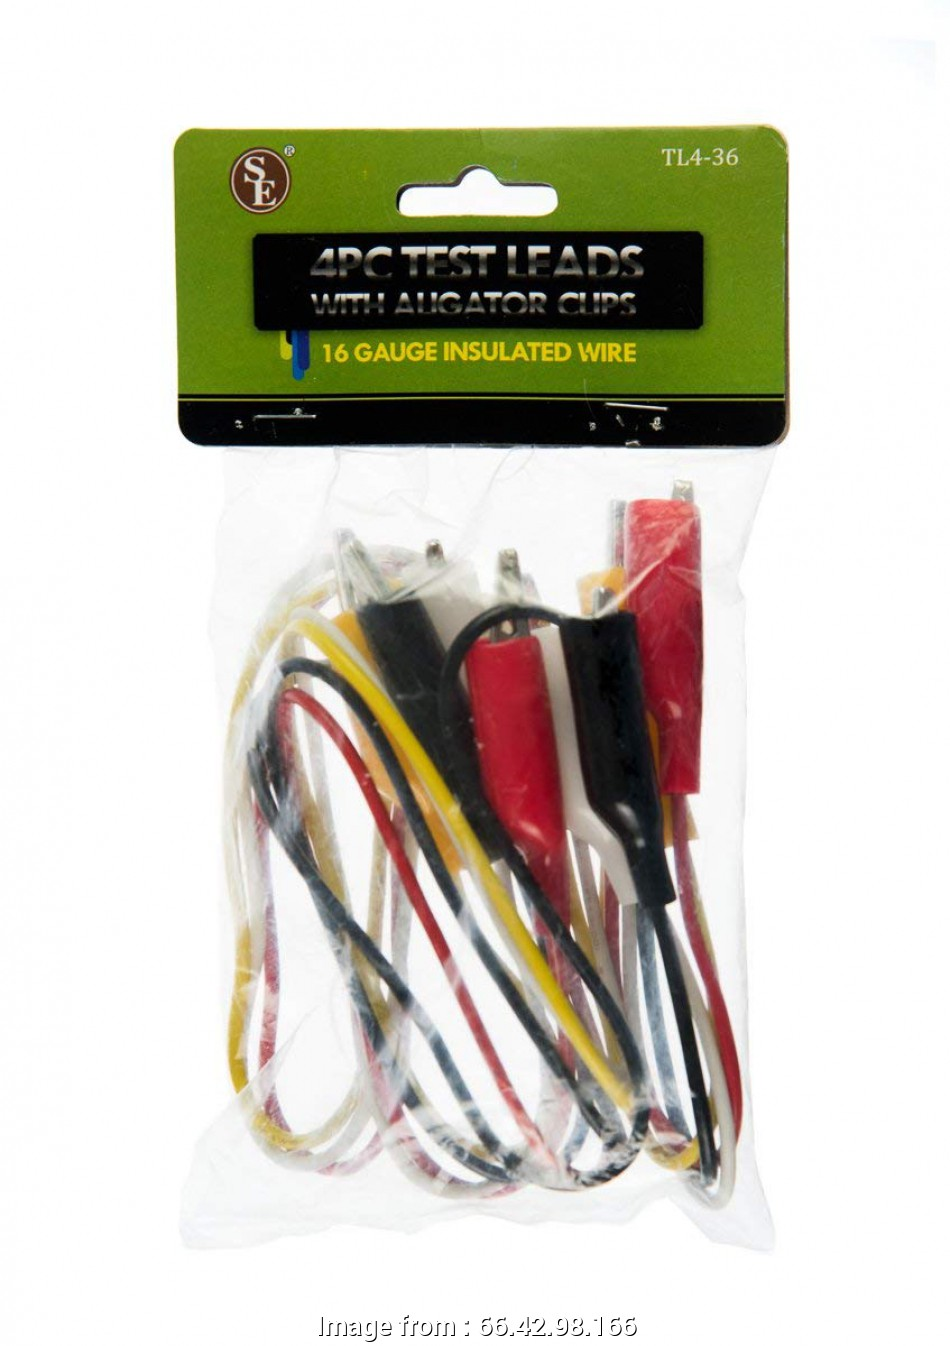 diameter of 6 gauge wire se, 36 16 gauge test lead sets with alligator clips pack of 4 rh amazon, 2 Gauge Wire, Gauge Electrical Wire Diameter Of 6 Gauge Wire Cleaver Se, 36 16 Gauge Test Lead Sets With Alligator Clips Pack Of 4 Rh Amazon, 2 Gauge Wire, Gauge Electrical Wire Solutions